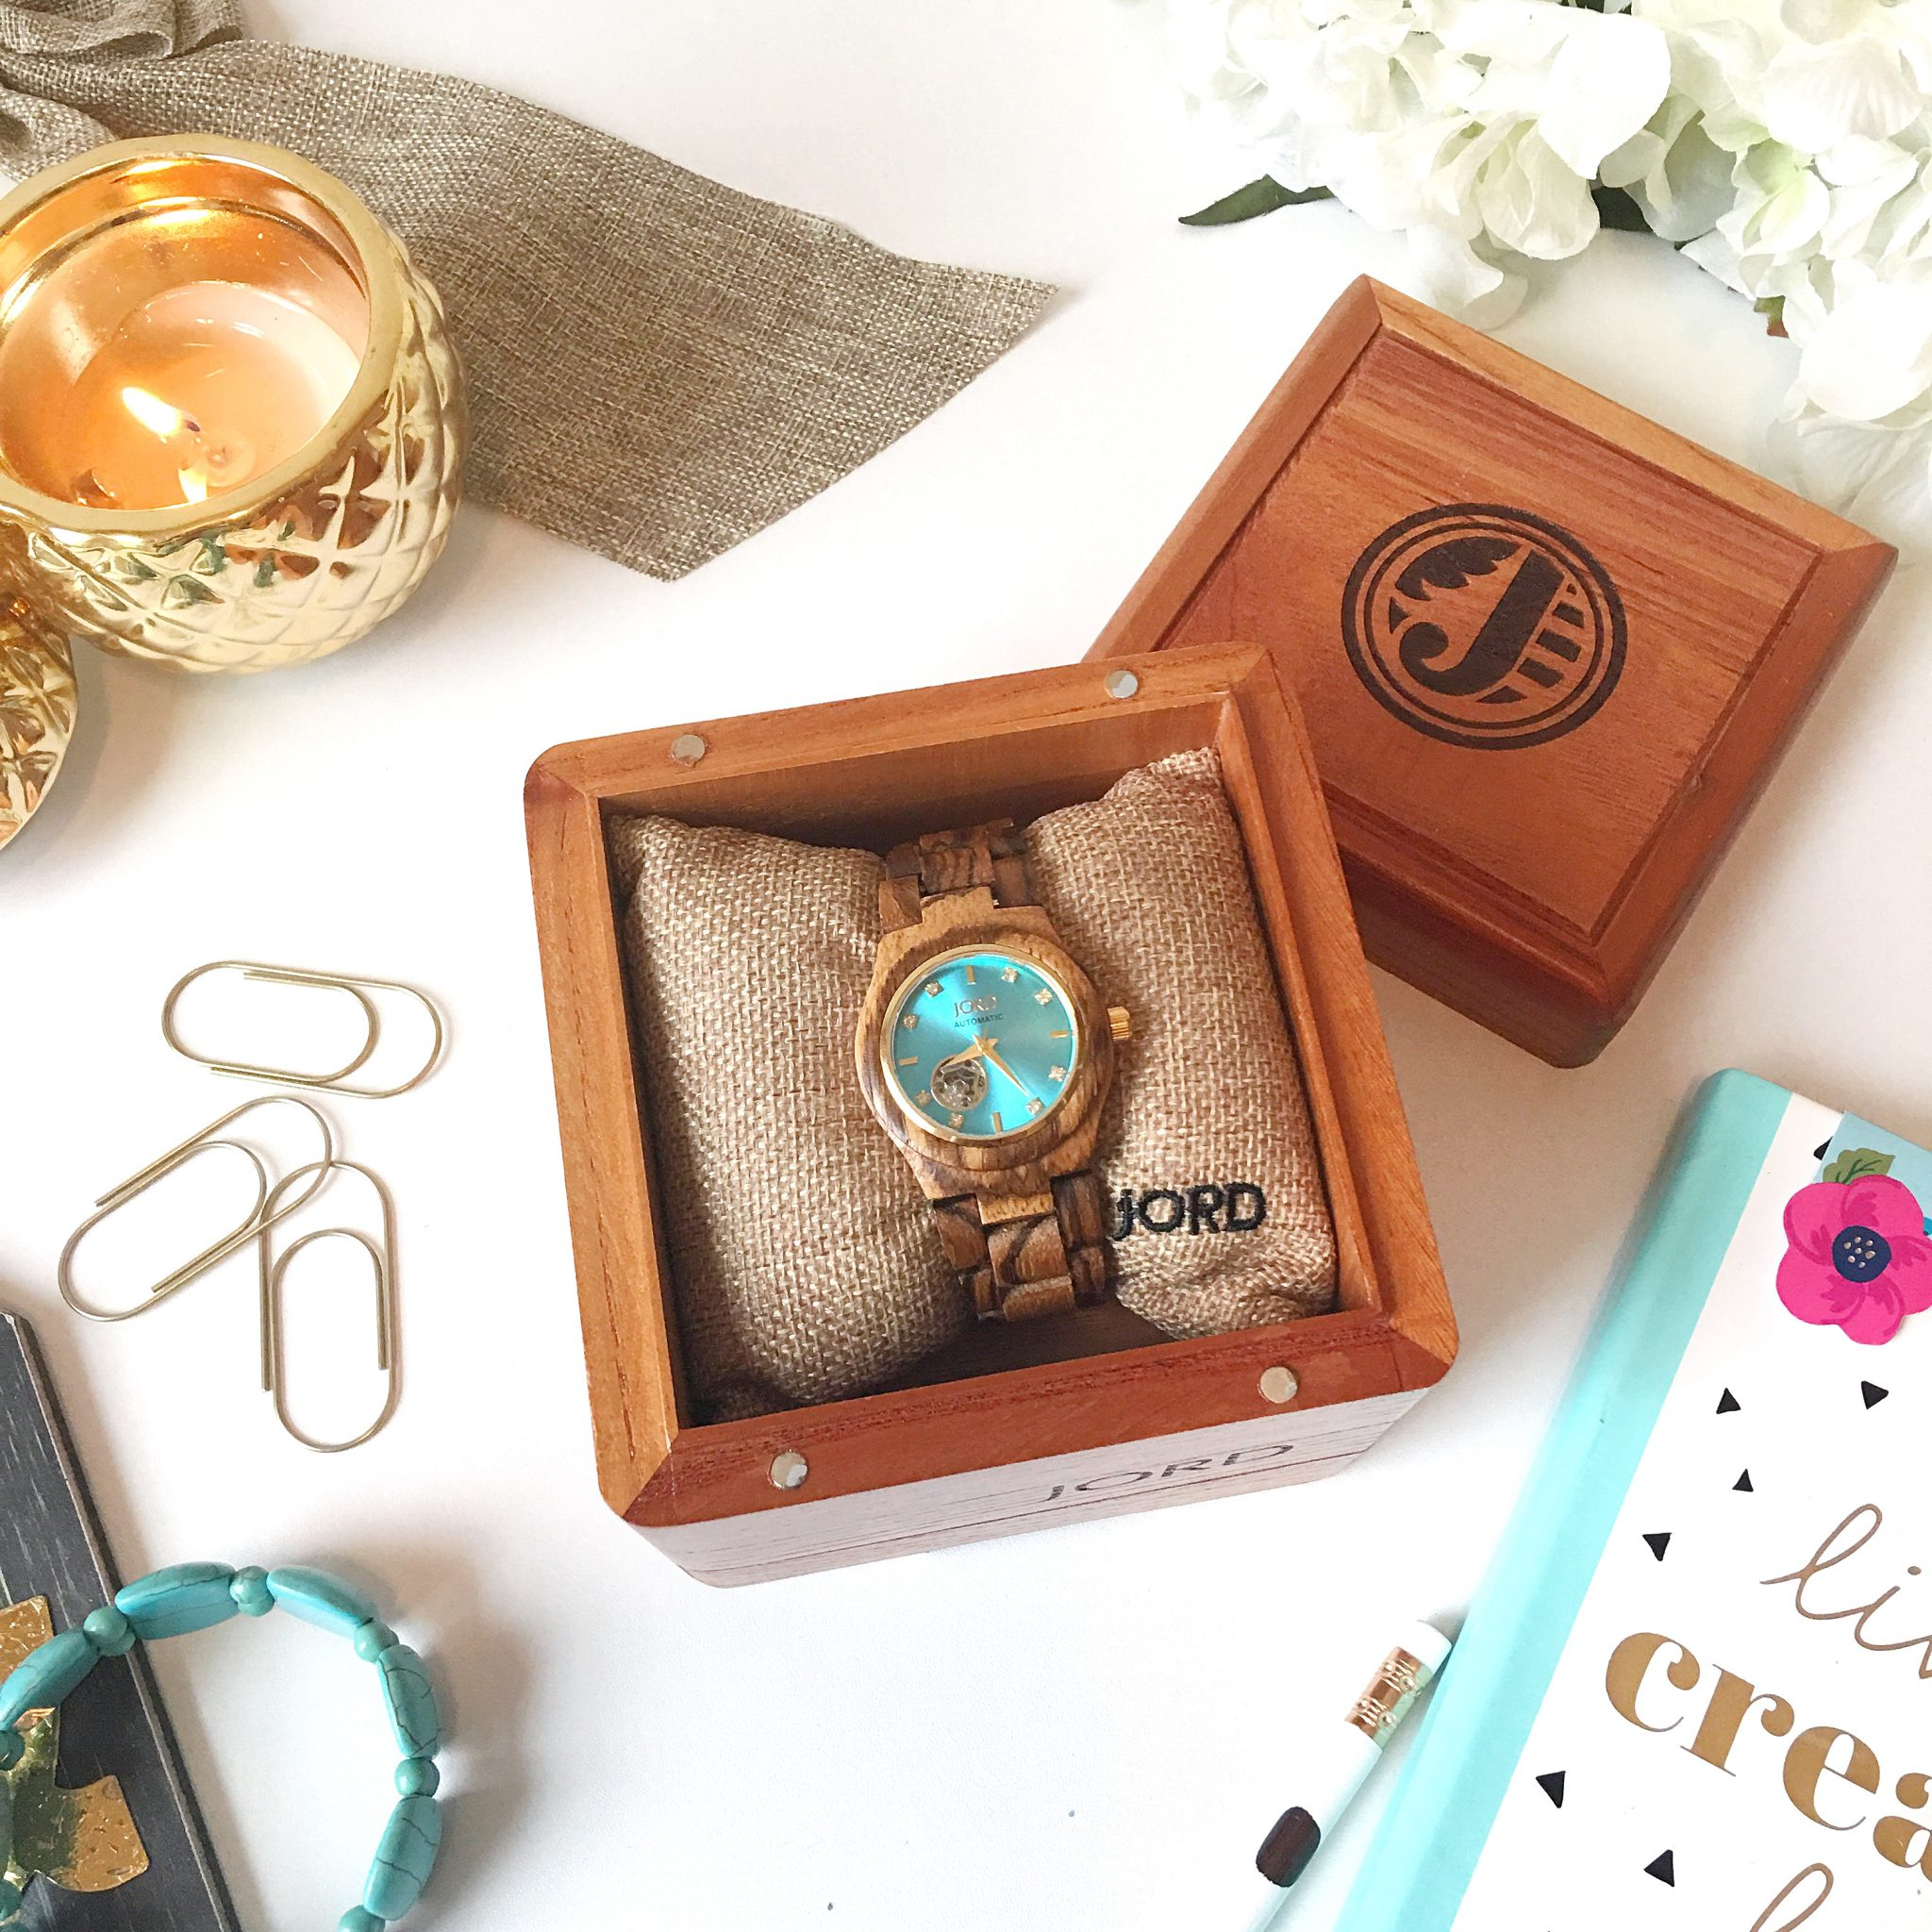 Spring Ready with my Cora Series Jord Wood Watch || Unboxing & Huge Giveaway! graphic